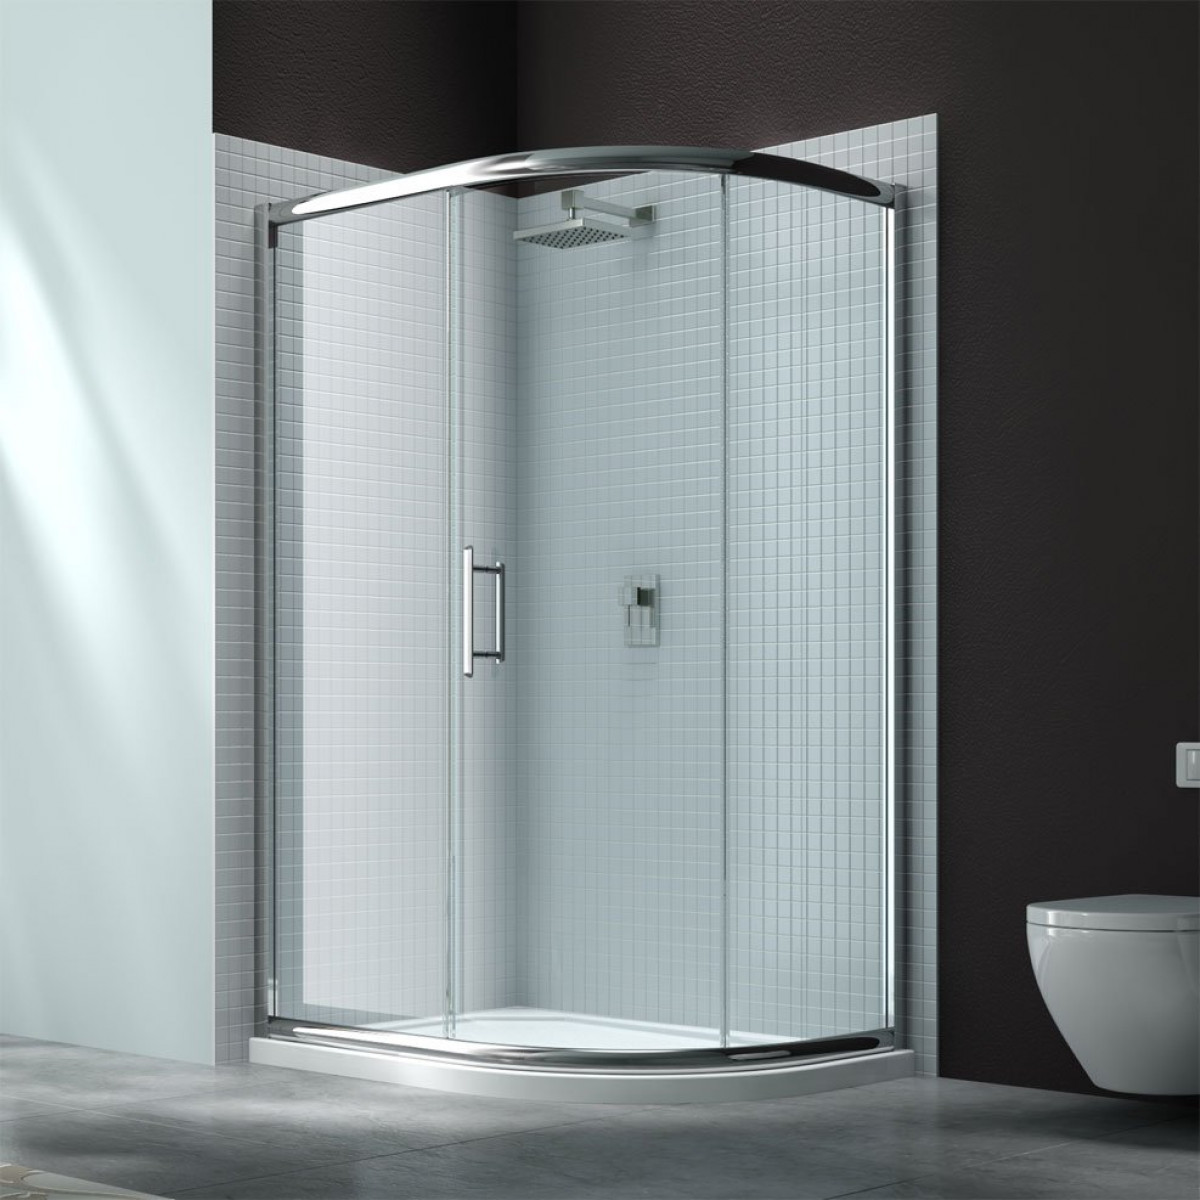 Merlyn 6 Series 900 x 900 1 Door Quadrant Shower Enclosure -